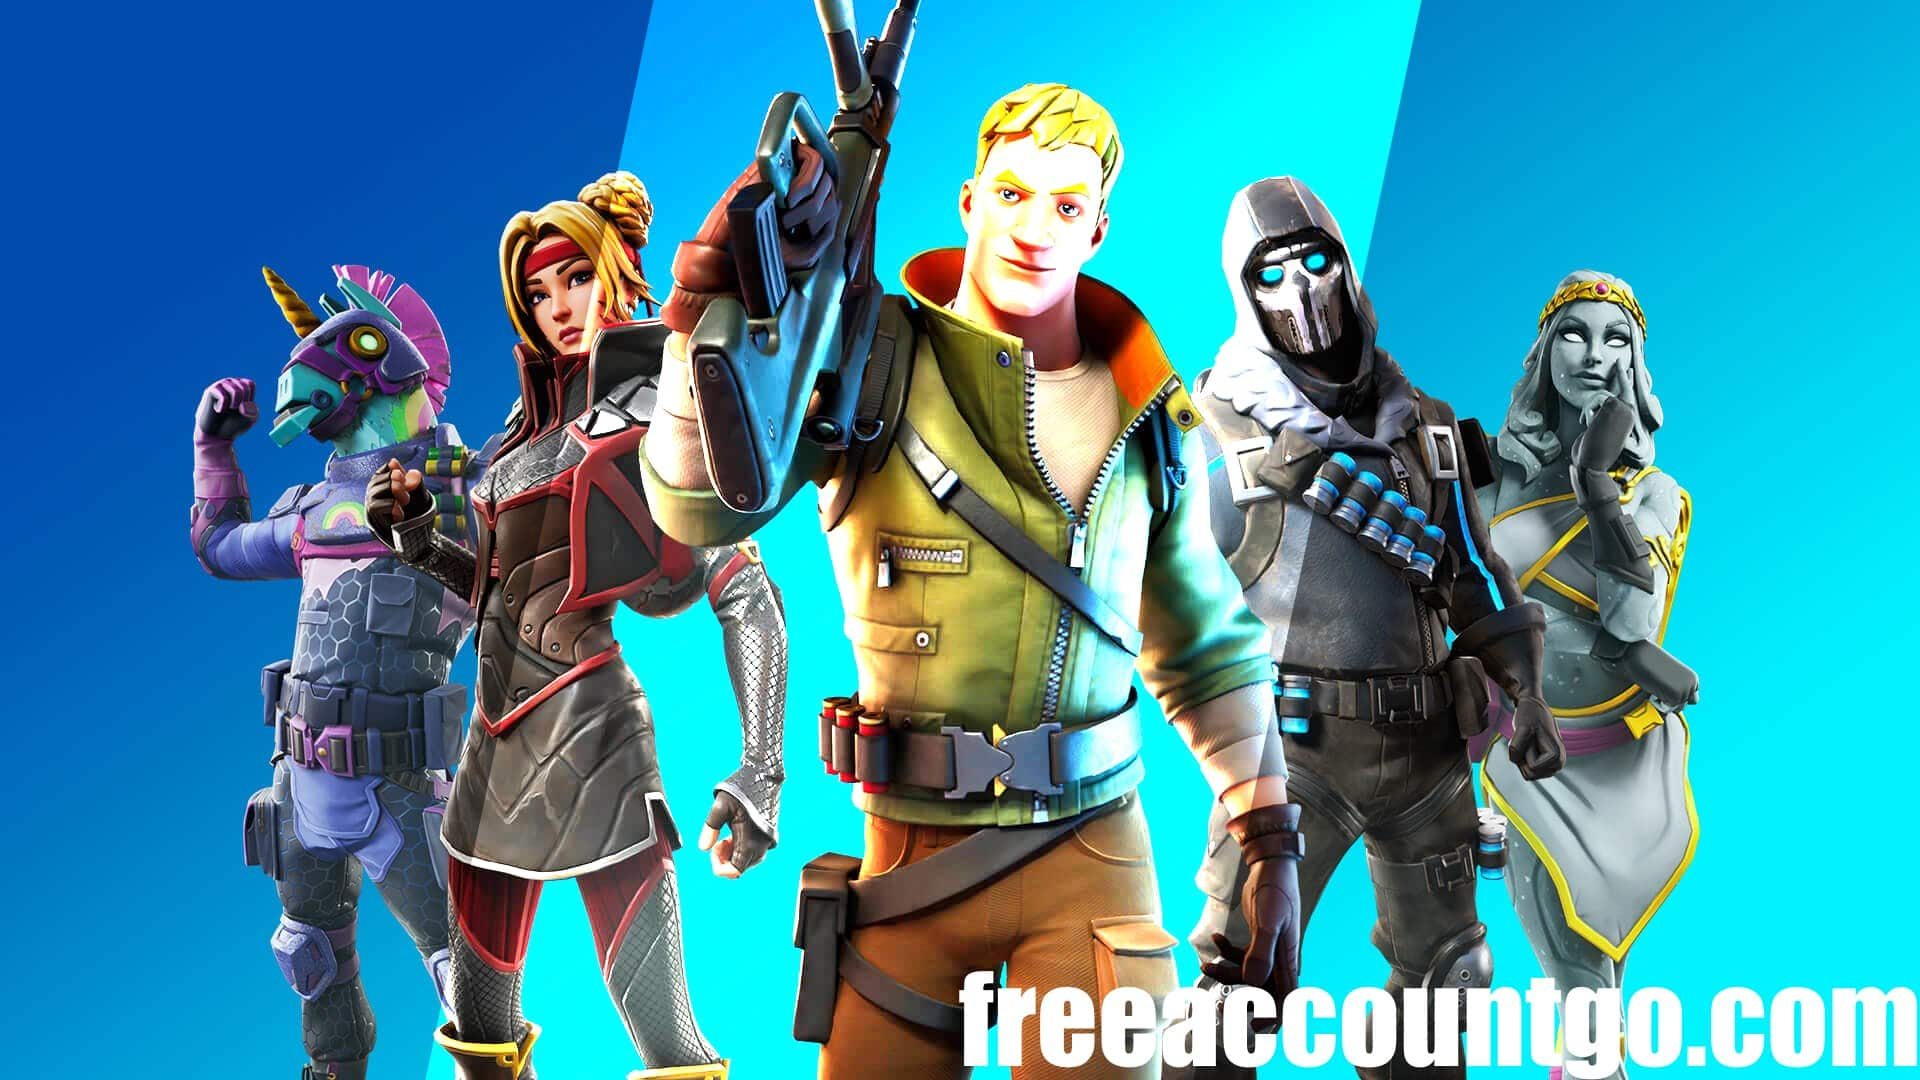 How To Get Free Fortnite Accounts 2020 Free Fortnite Accounts 2021 Login Email And Password List